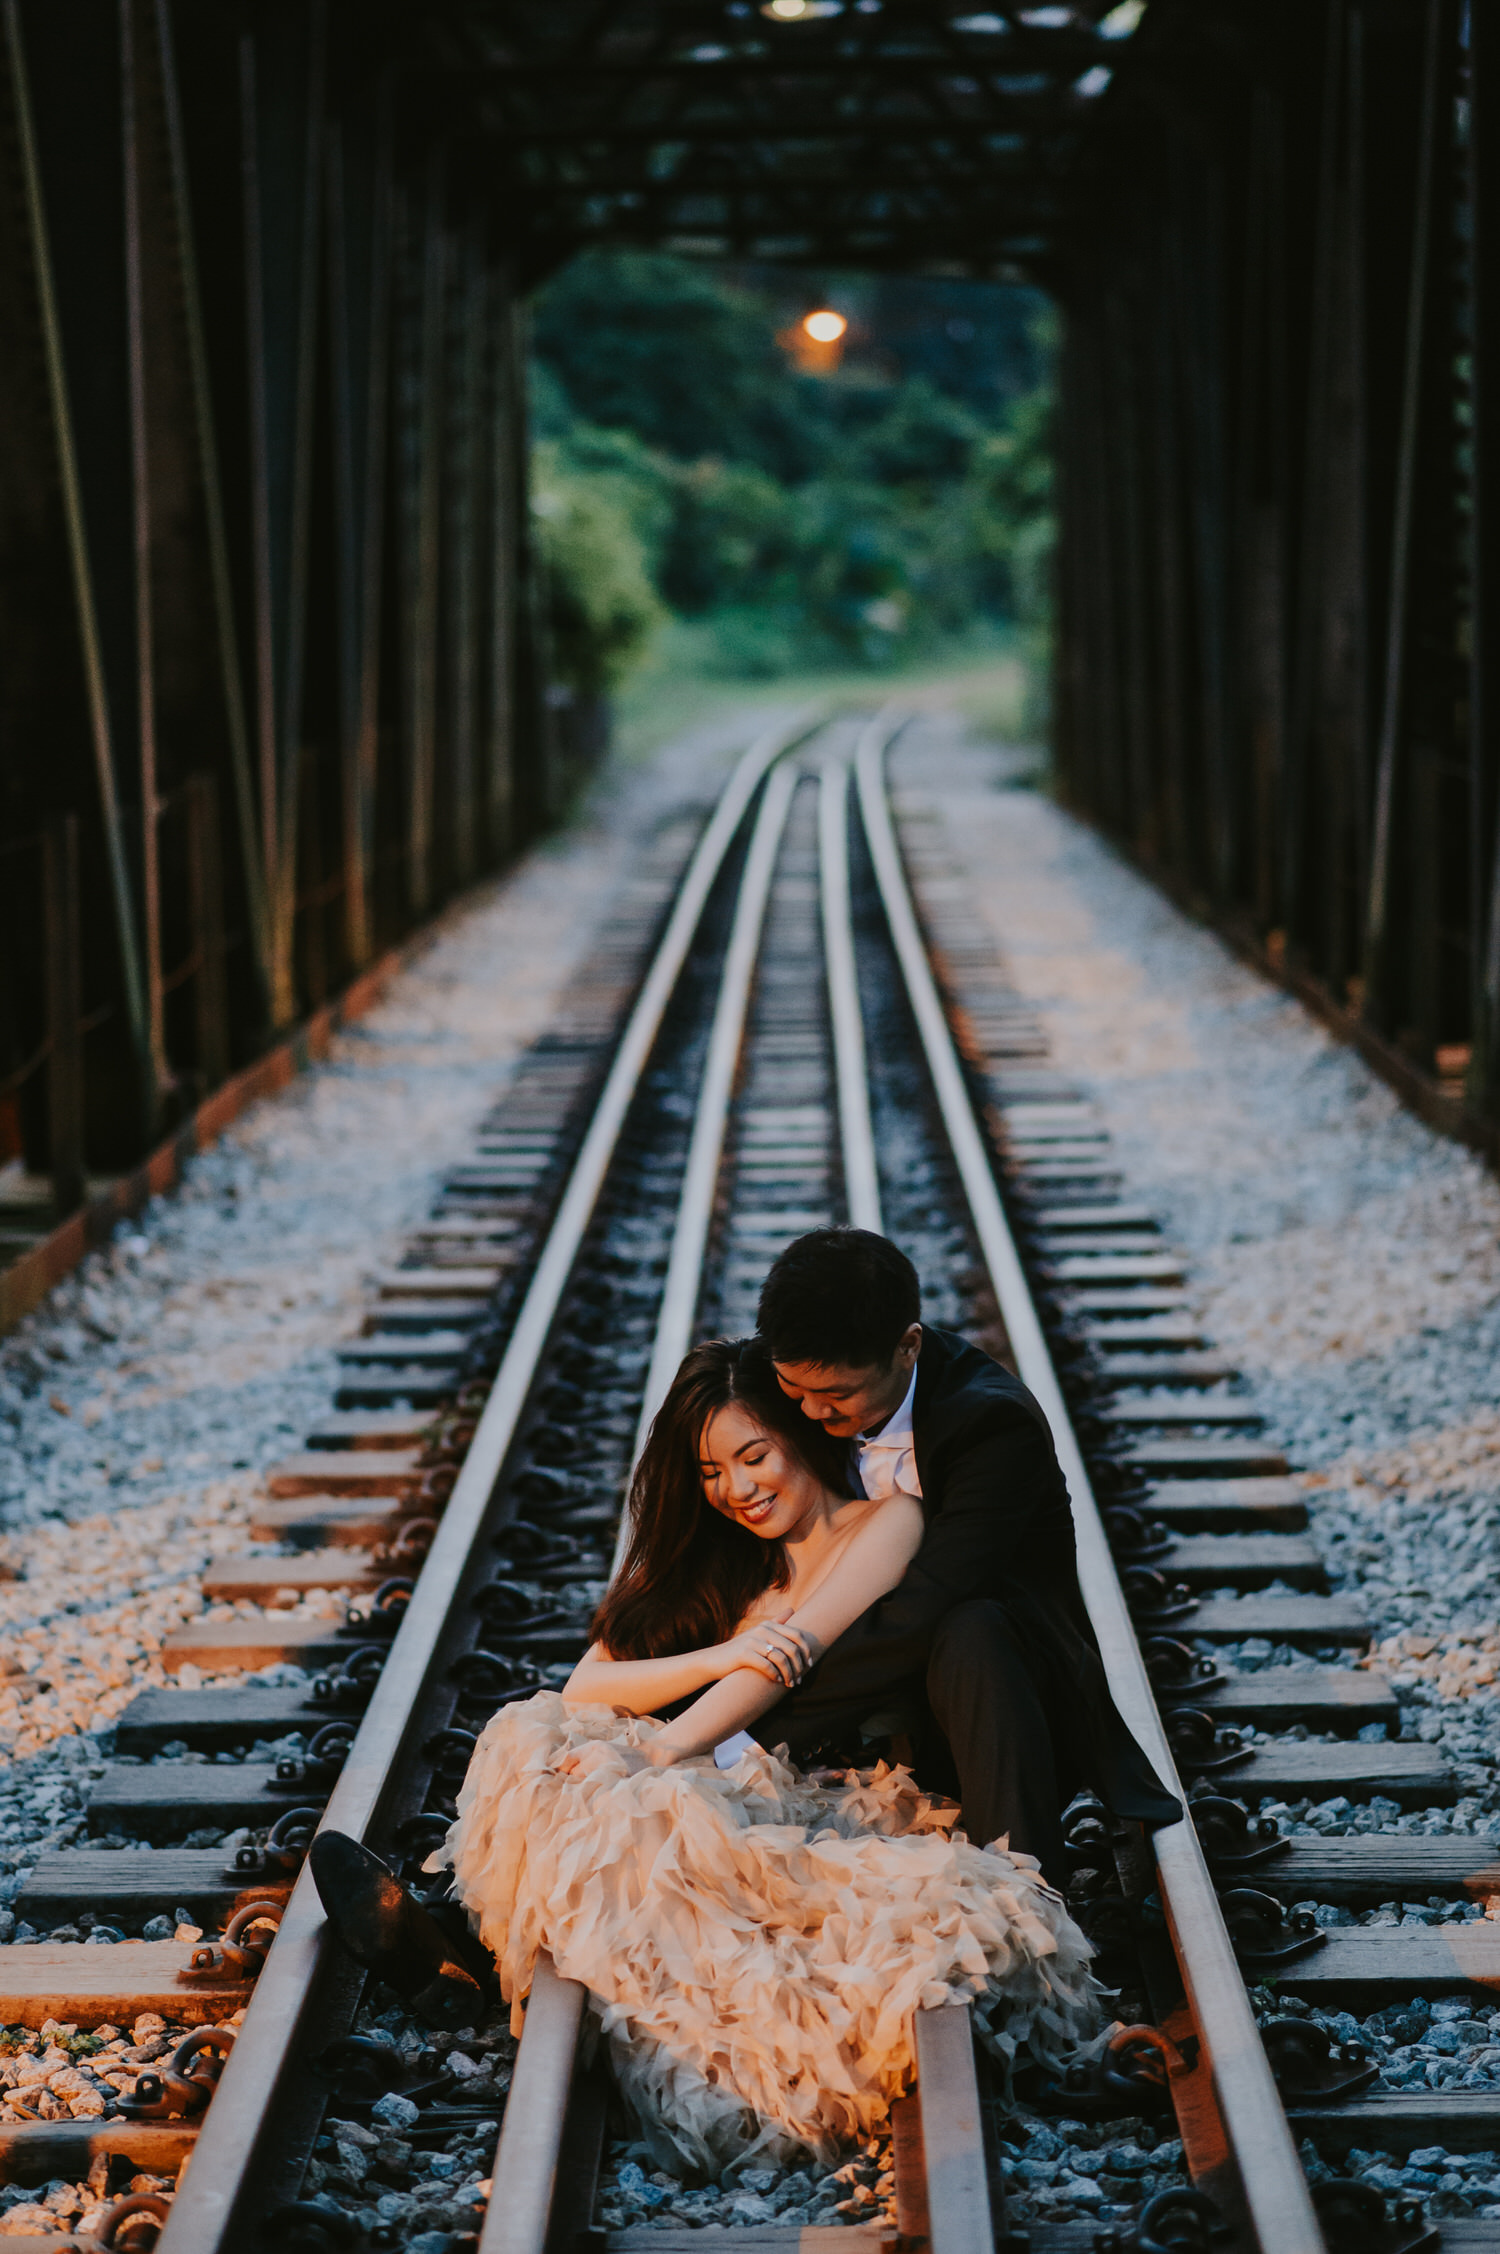 singapore prewedding destination - singapore wedding - diktatphotography - kadek artayasa - nikole + ardika - 45